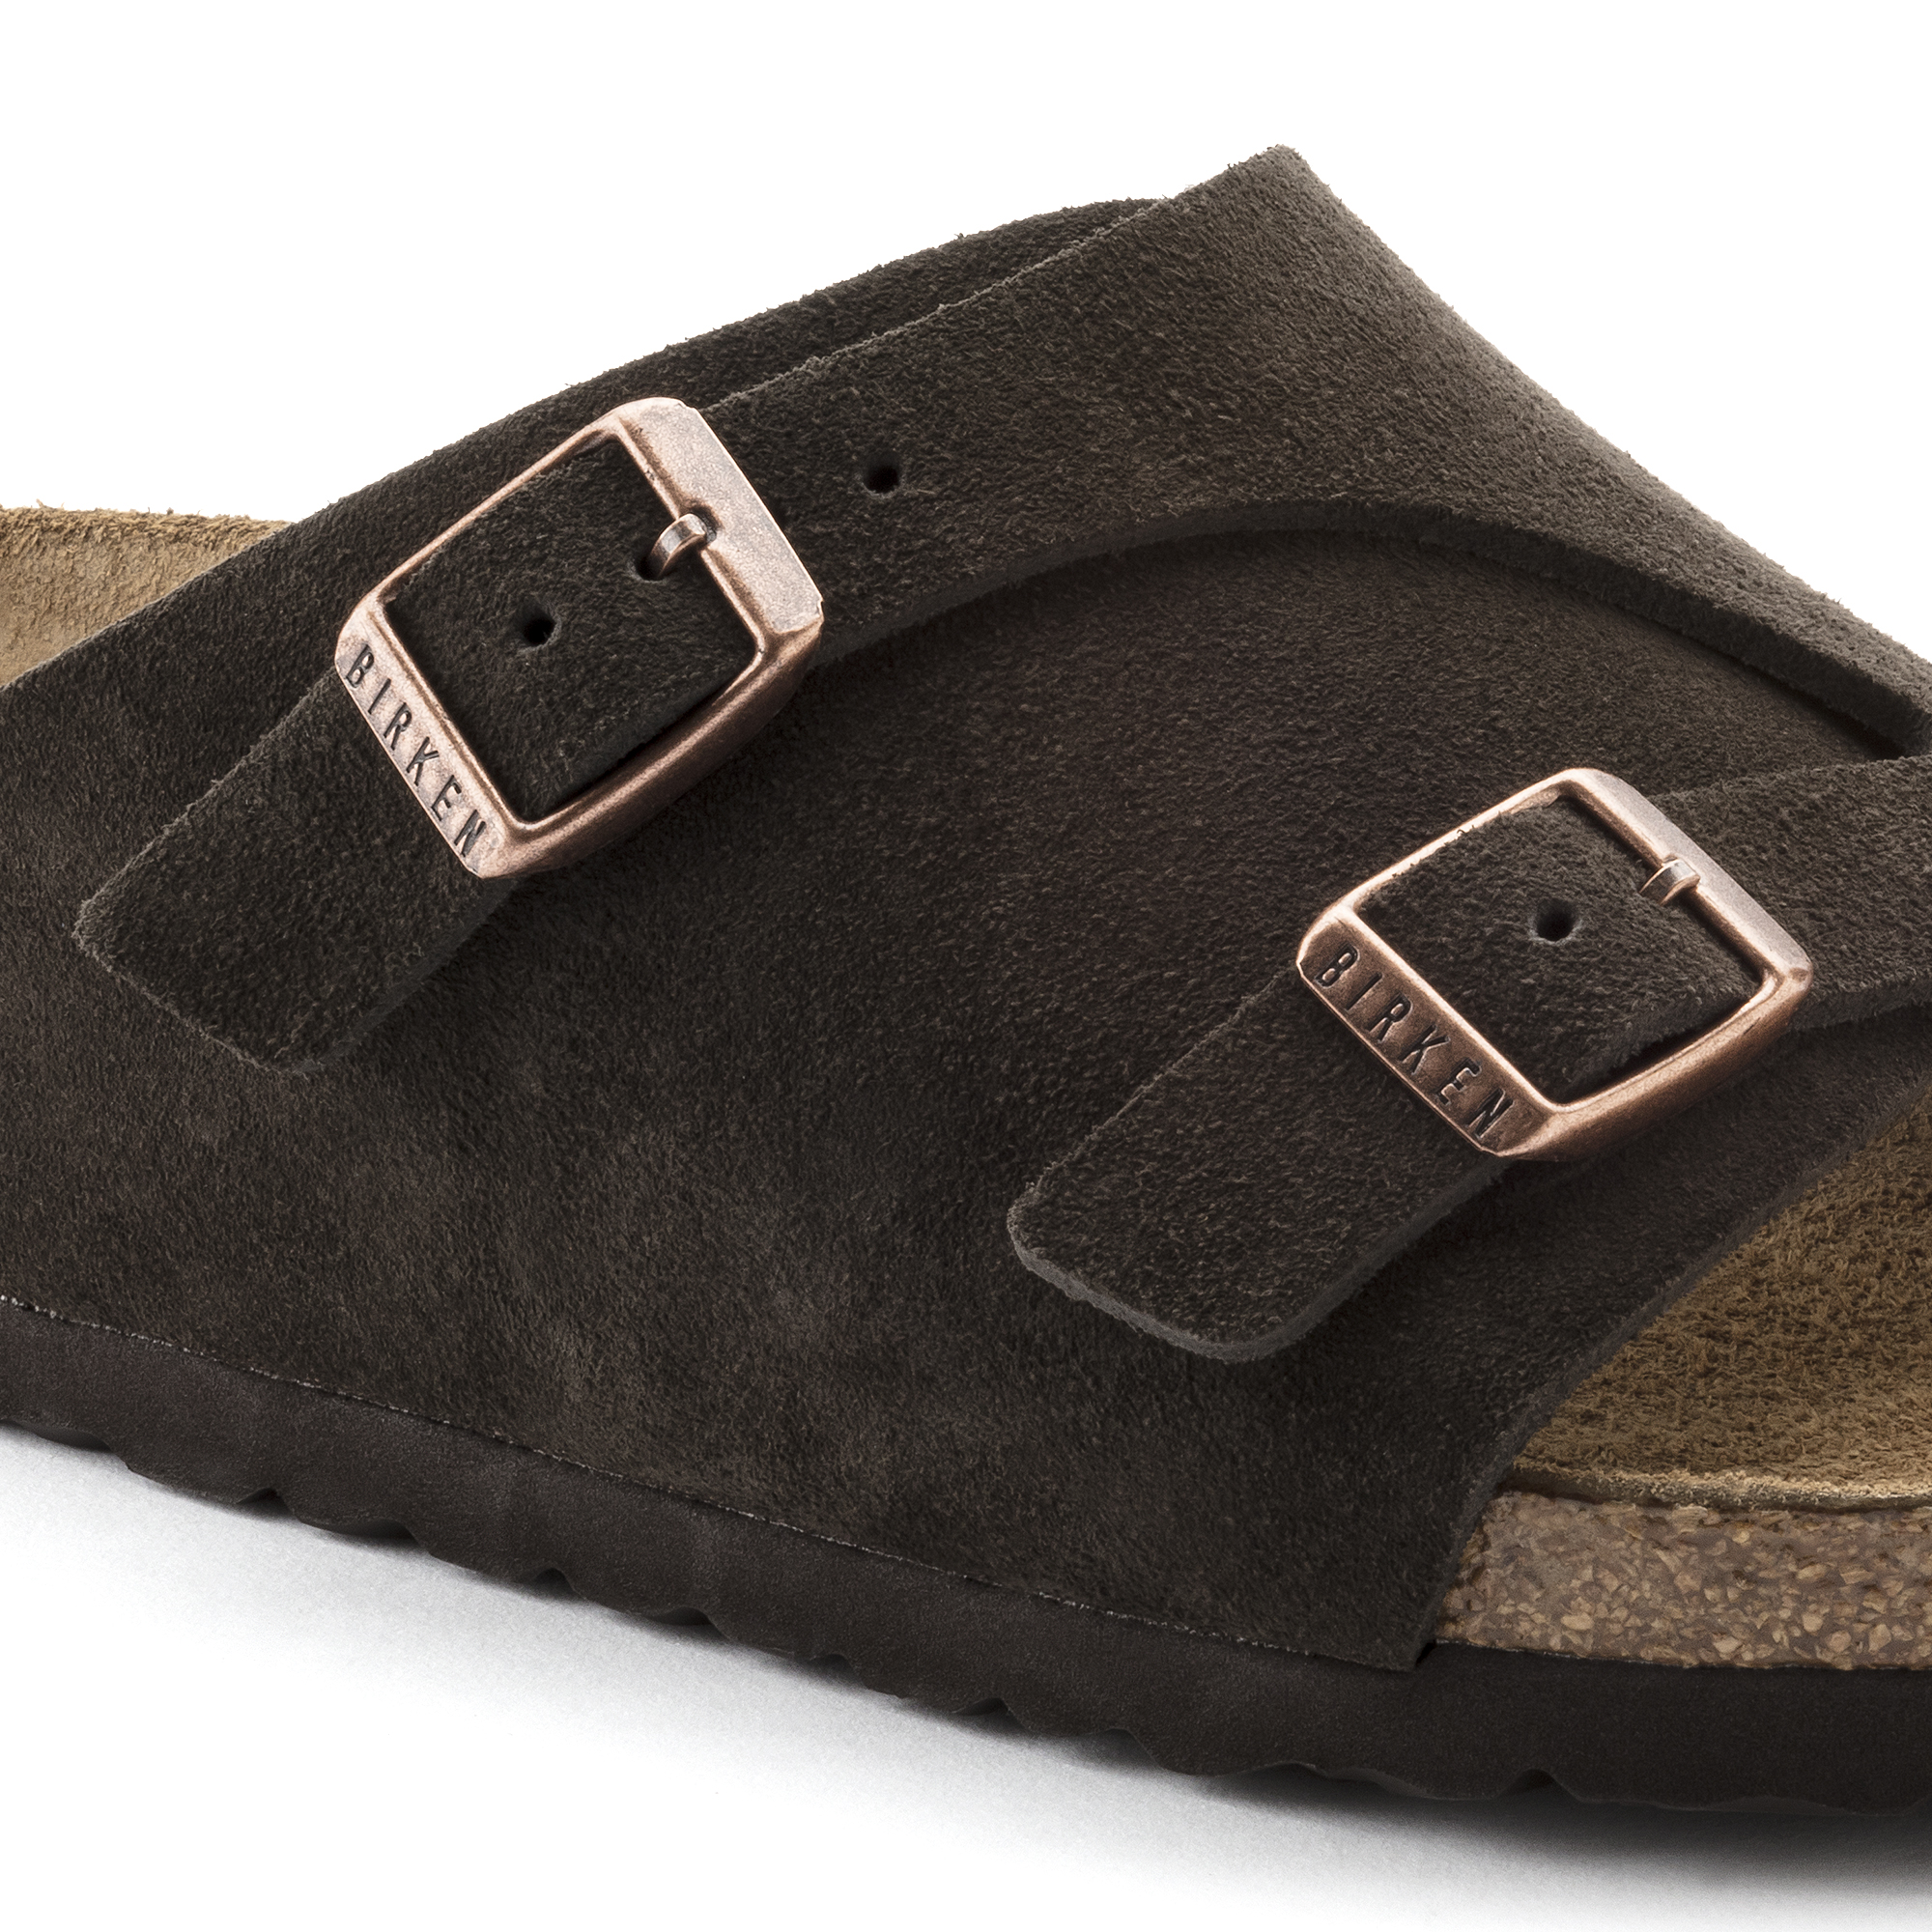 41f24a204cbe2 ... Zürich Suede Leather Soft Footbed Mocha ...